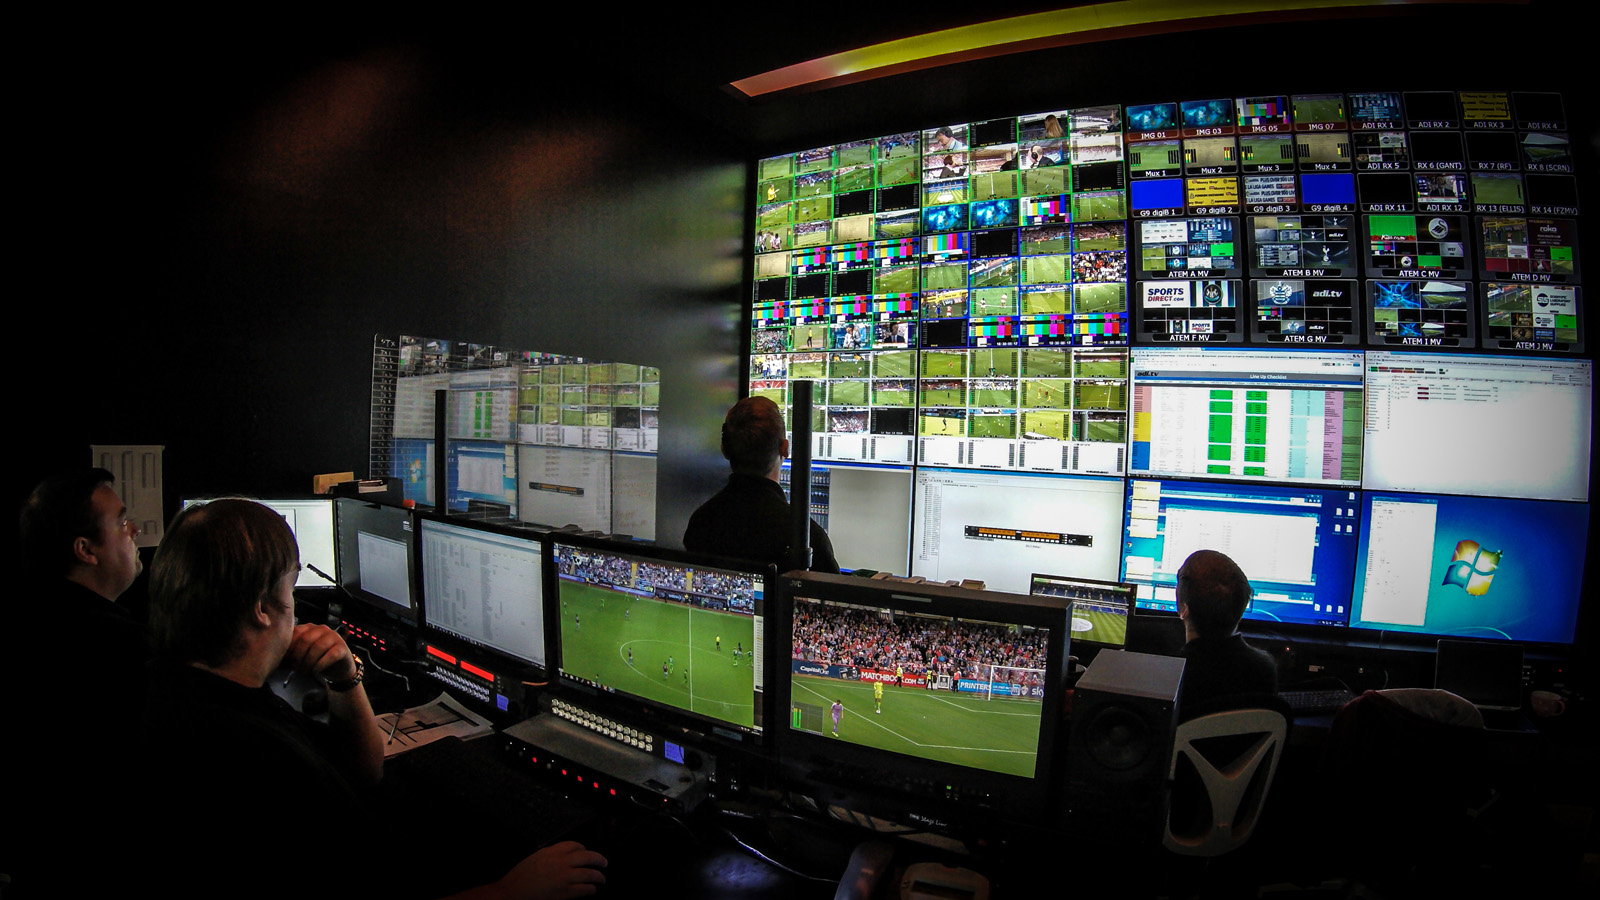 ADI wows stadium fans with broadcast-quality sports video 6